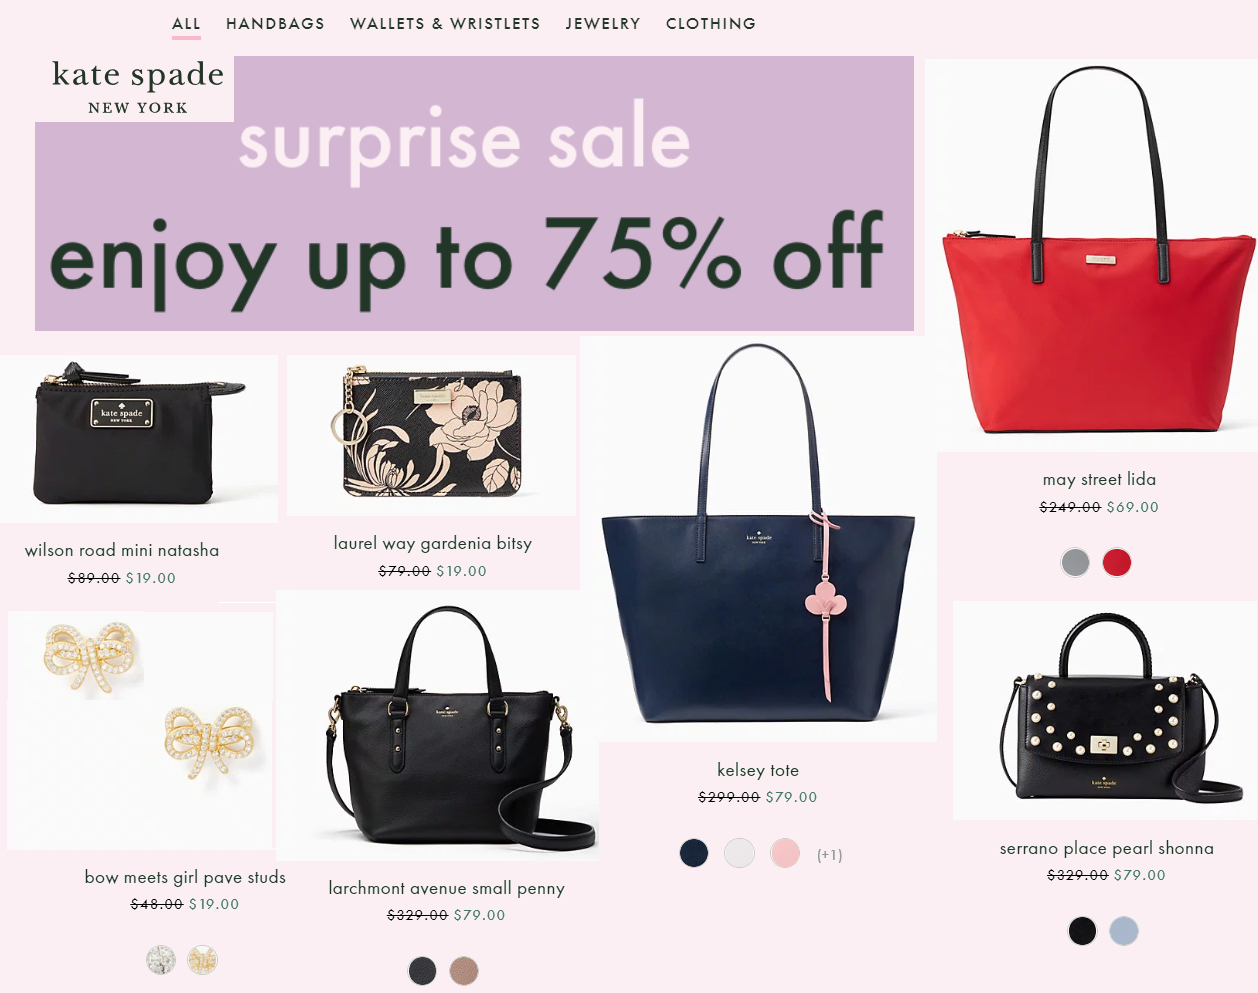 b3a572193d1 Kate Spade Up To 75% Off Surprise Sale  Kate Spade Kelsey Tote Only  79  (Reg  229)